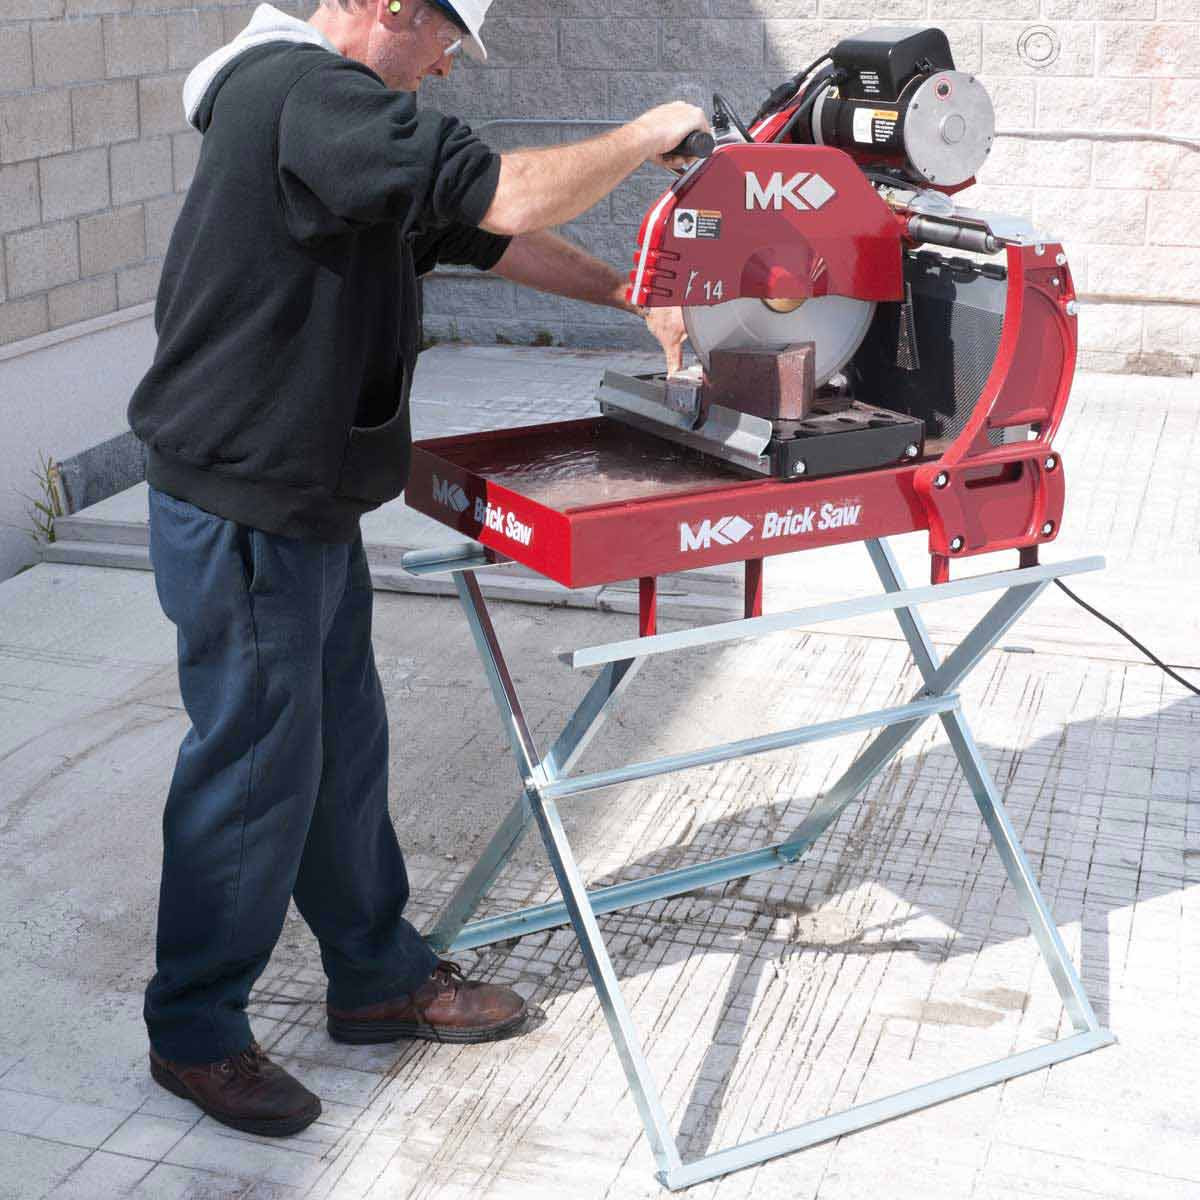 MK-2000 Masonry Saw Cutting Brick